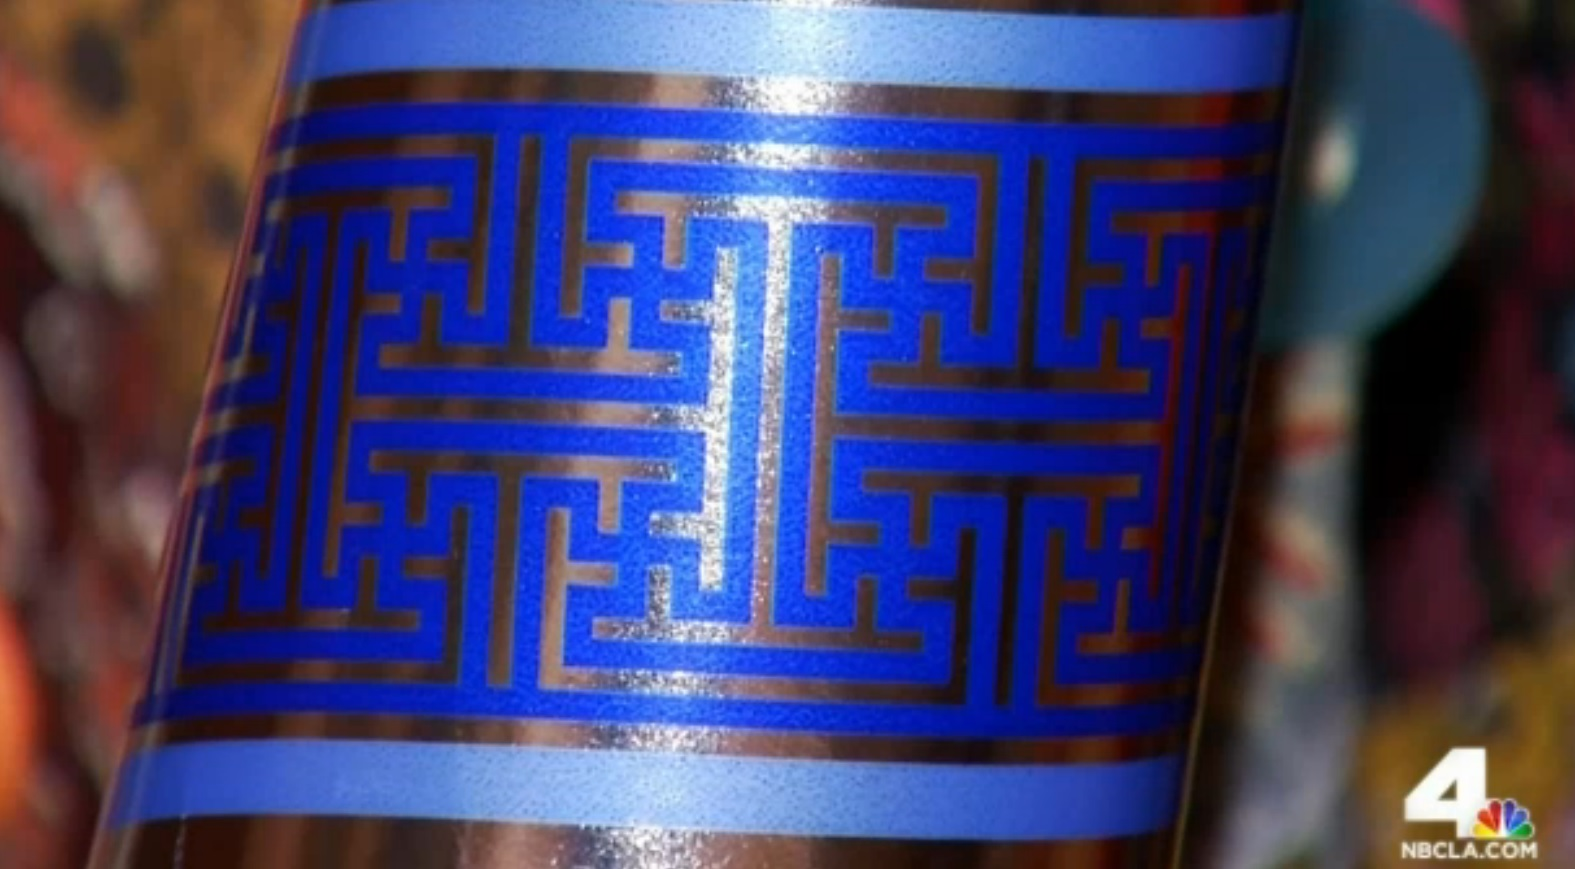 US pharmacy Walgreens pulls 'Swastika' wrapping paper from Hanukkah section in store